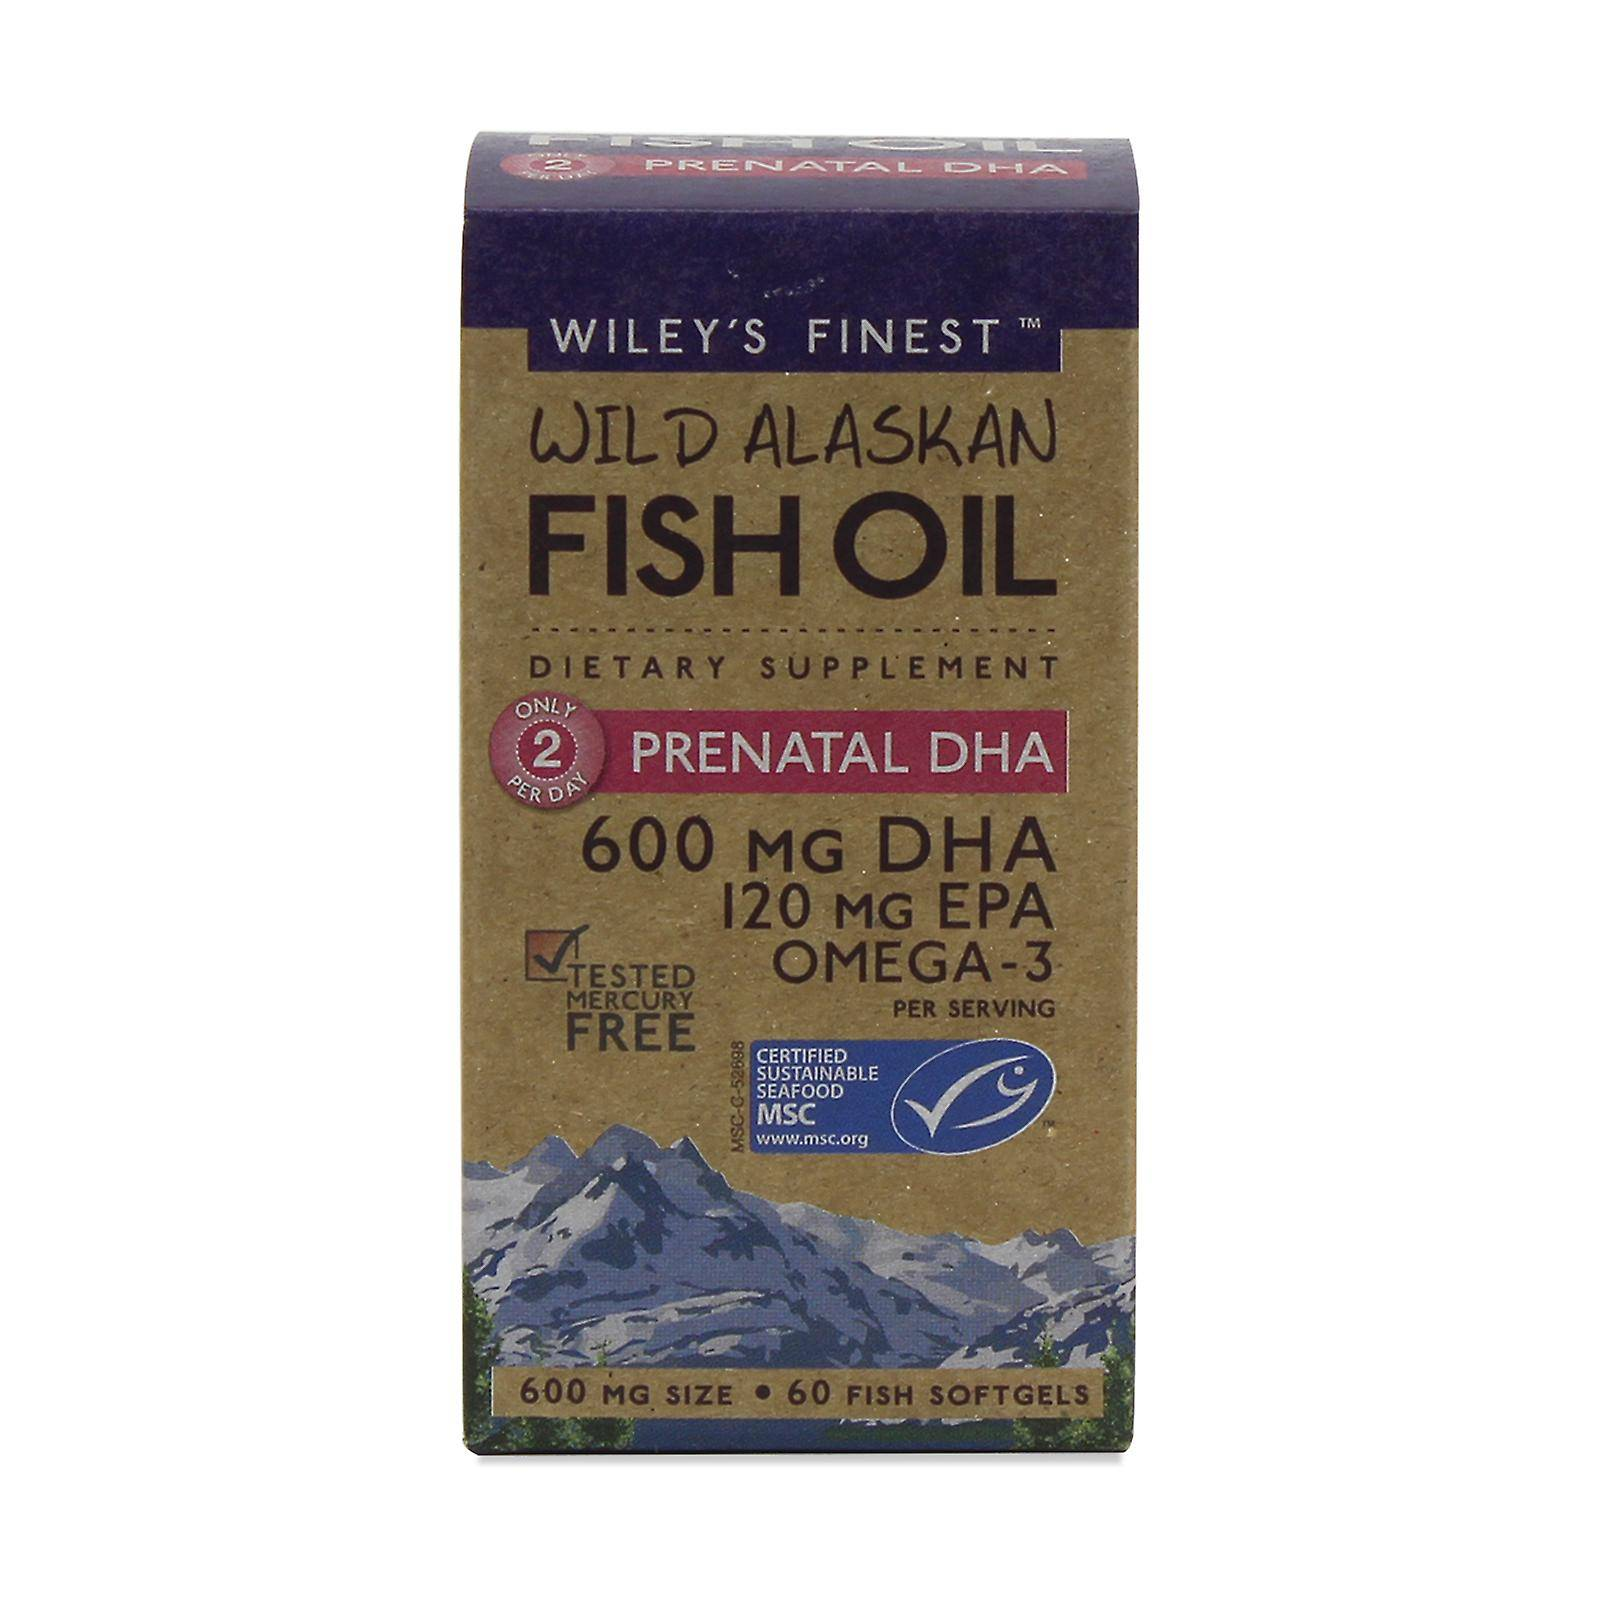 Wiley's Finest UK Wiley est plus beaux UK, prénatal DHA 60 capsules